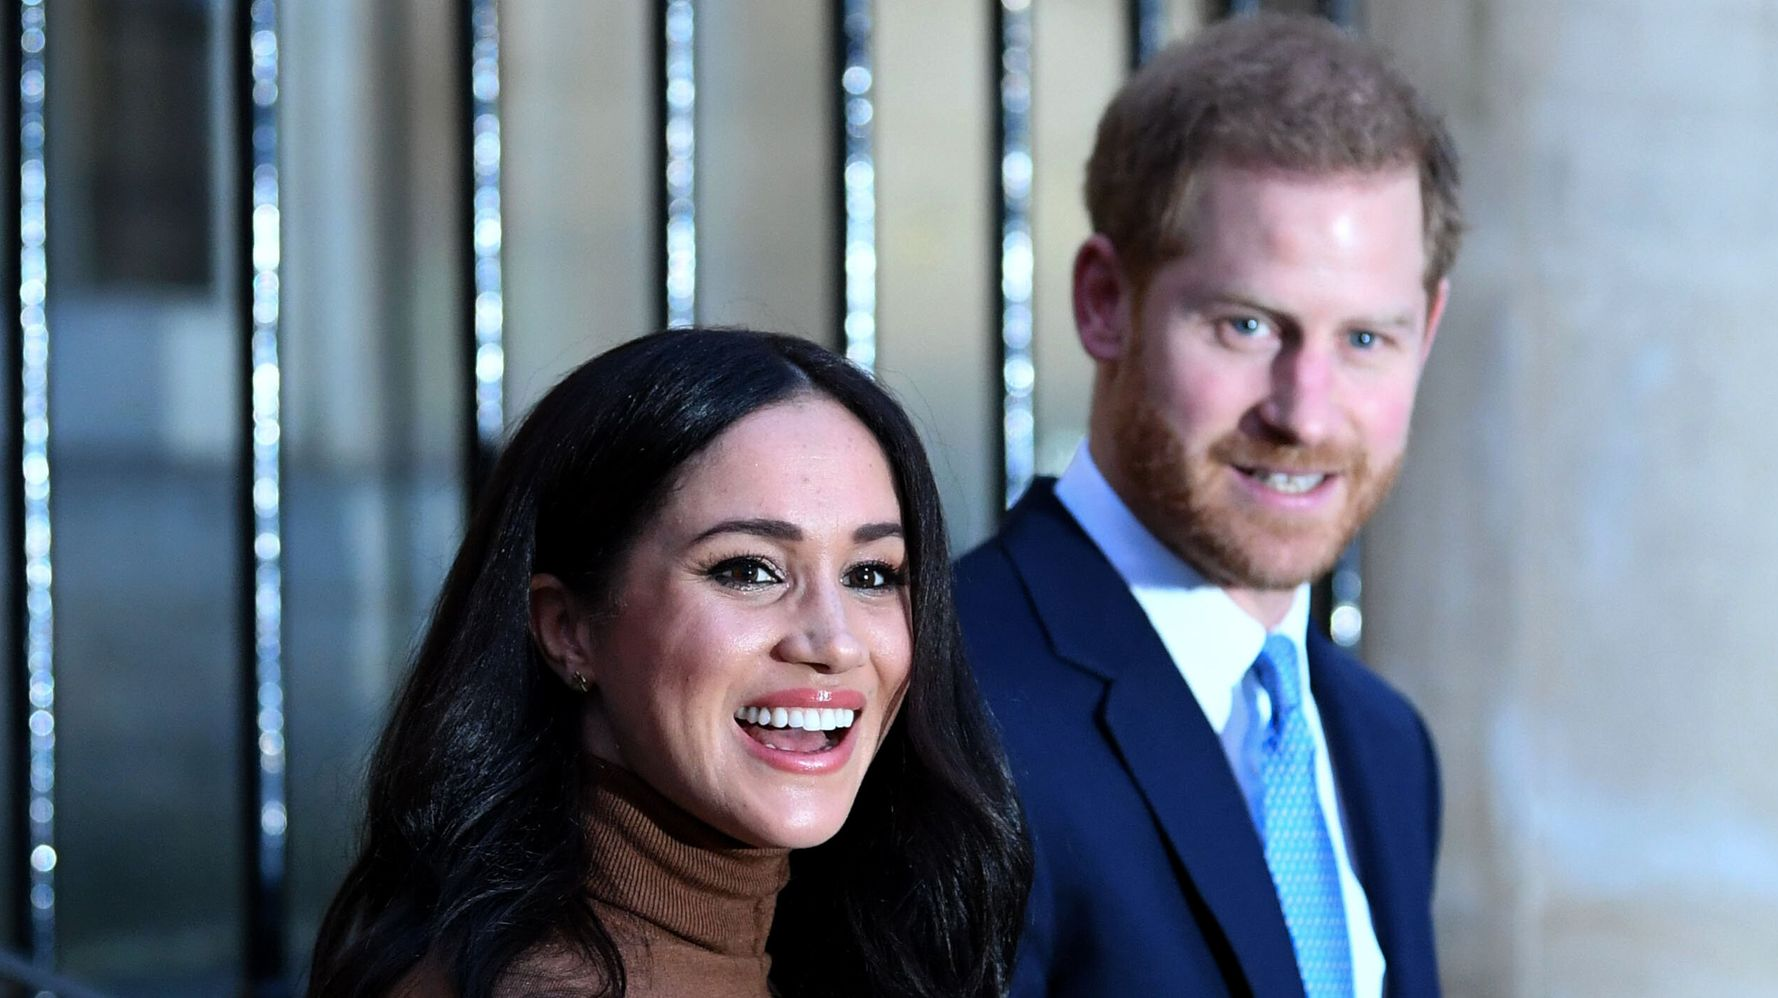 Meghan Markle And Prince Harry Express Support For UK Journalists Pushing For Change